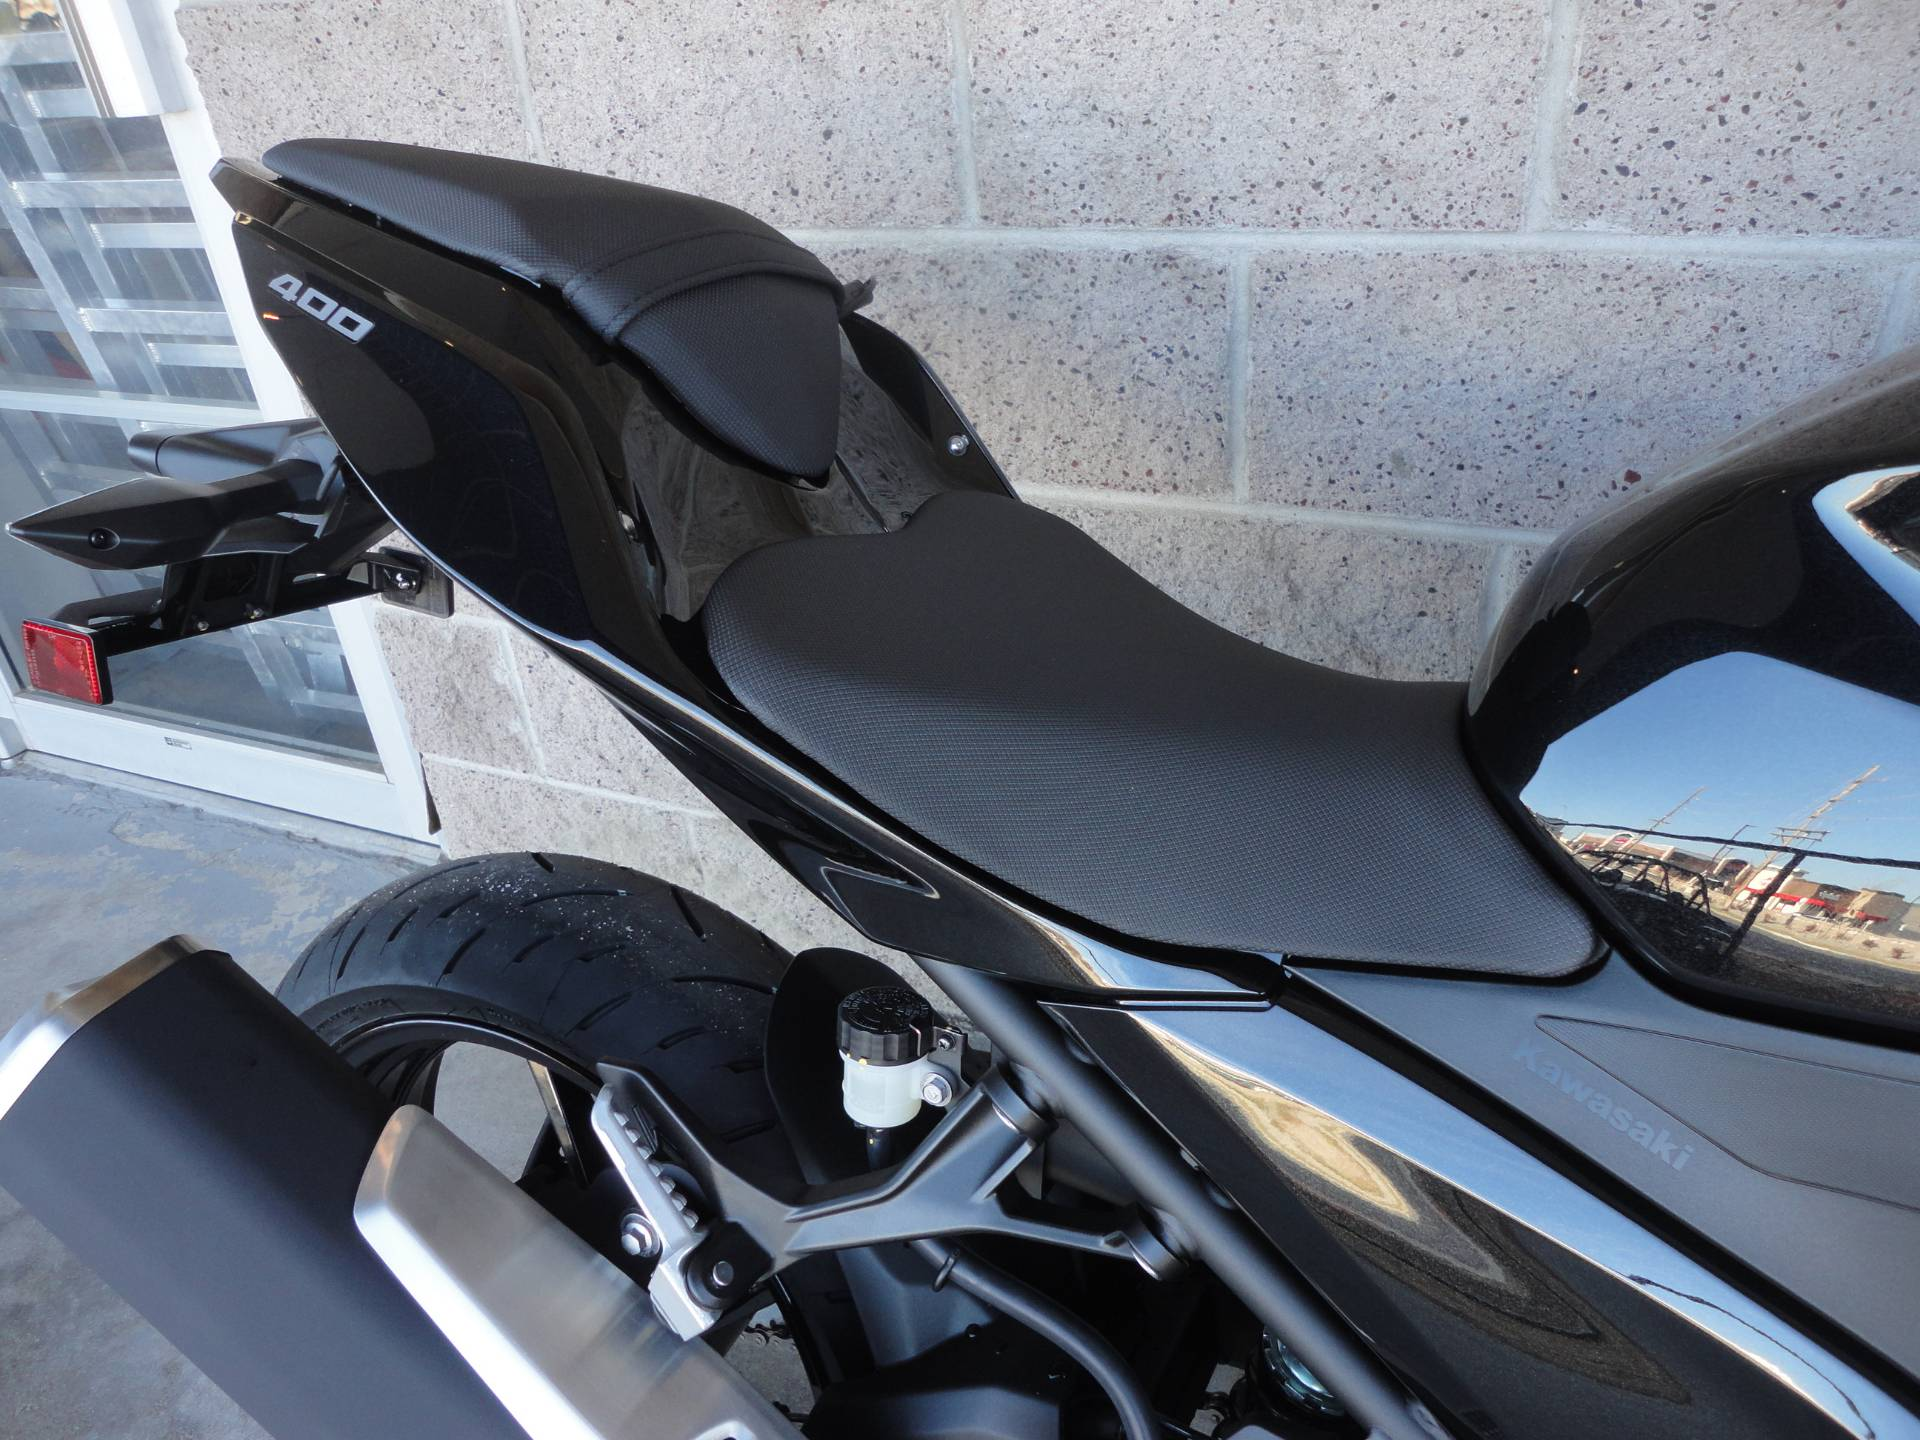 2019 Kawasaki Ninja 400 in Denver, Colorado